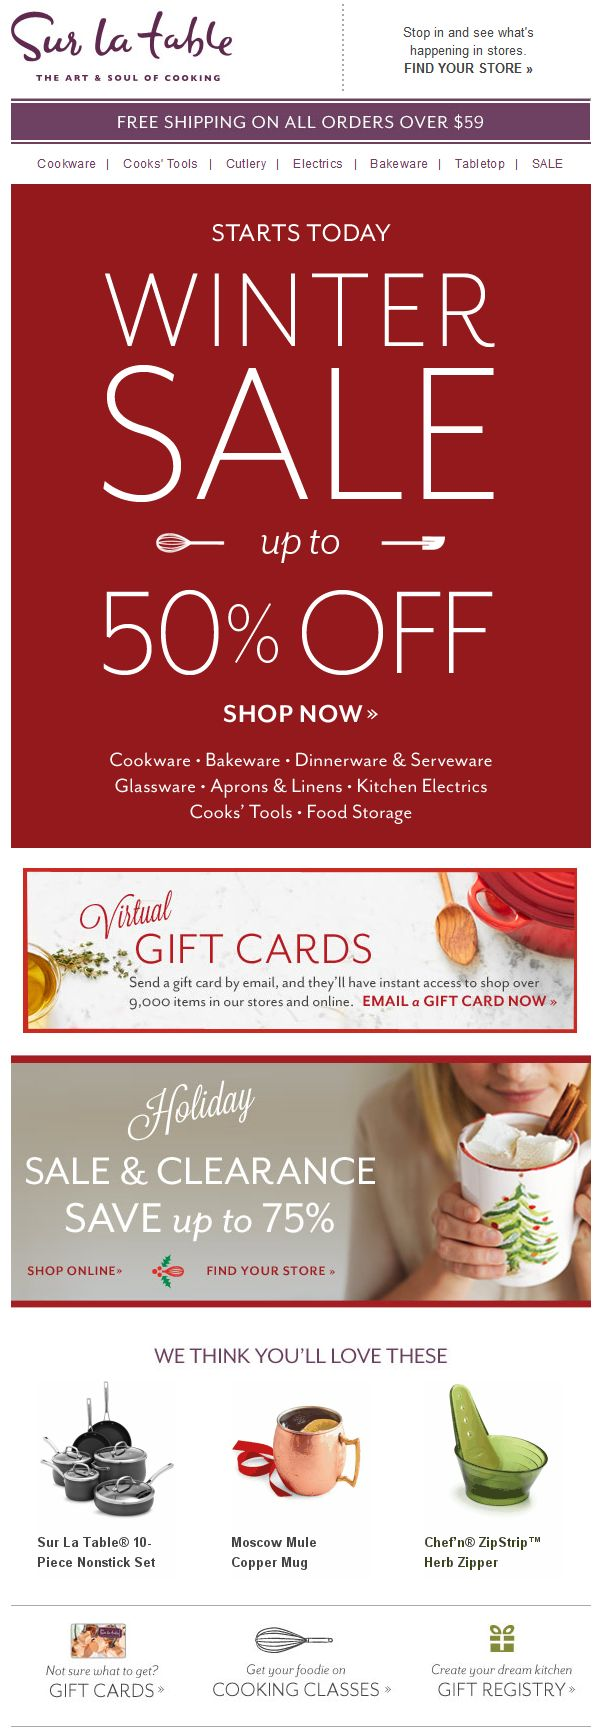 Sur la Table - winter sale up to 50% off; virtual gift cards